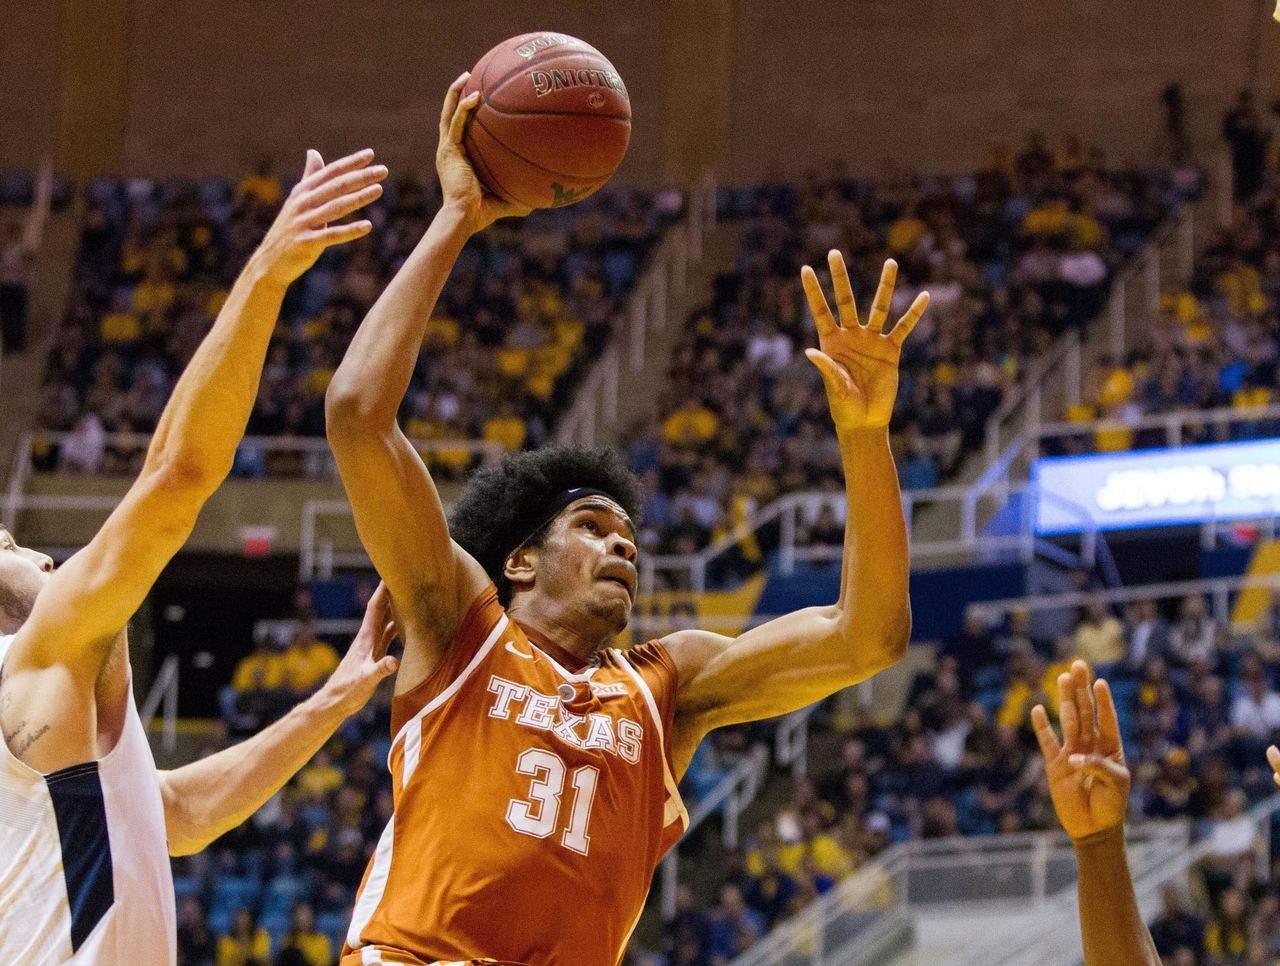 Cropped_2017-02-21t031110z_1077151690_nocid_rtrmadp_3_ncaa-basketball-texas-at-west-virginia